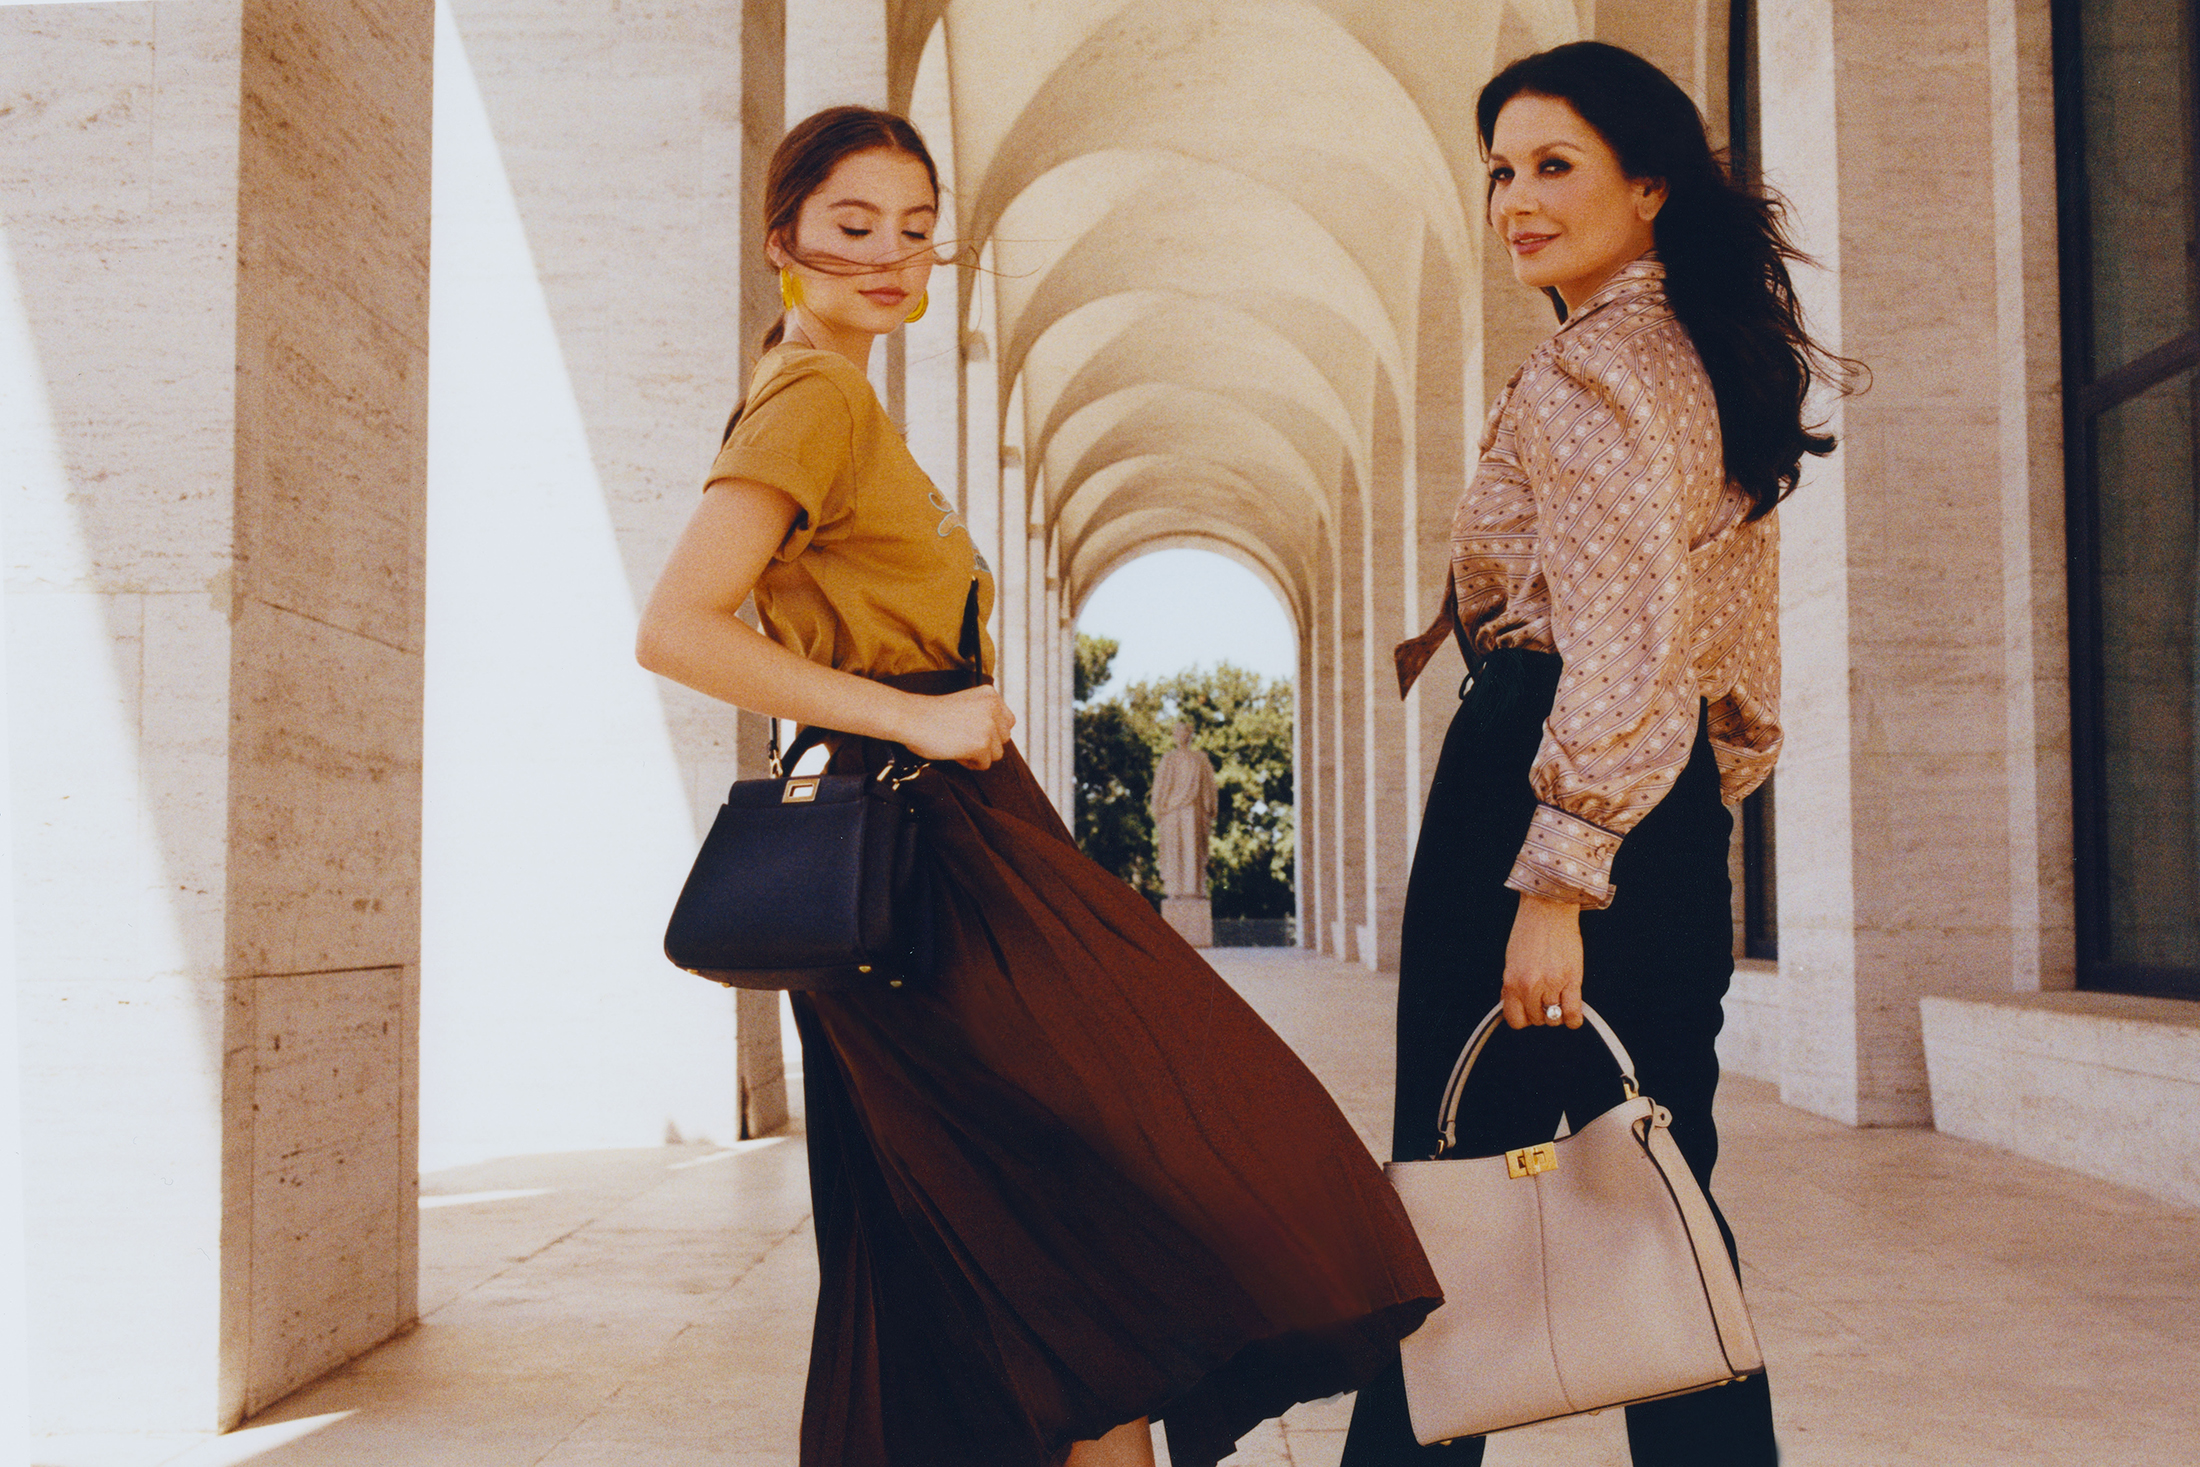 Fendi Peekaboo Bag Campaign With Catherine Zeta-Jones & Daughter Carys Douglas